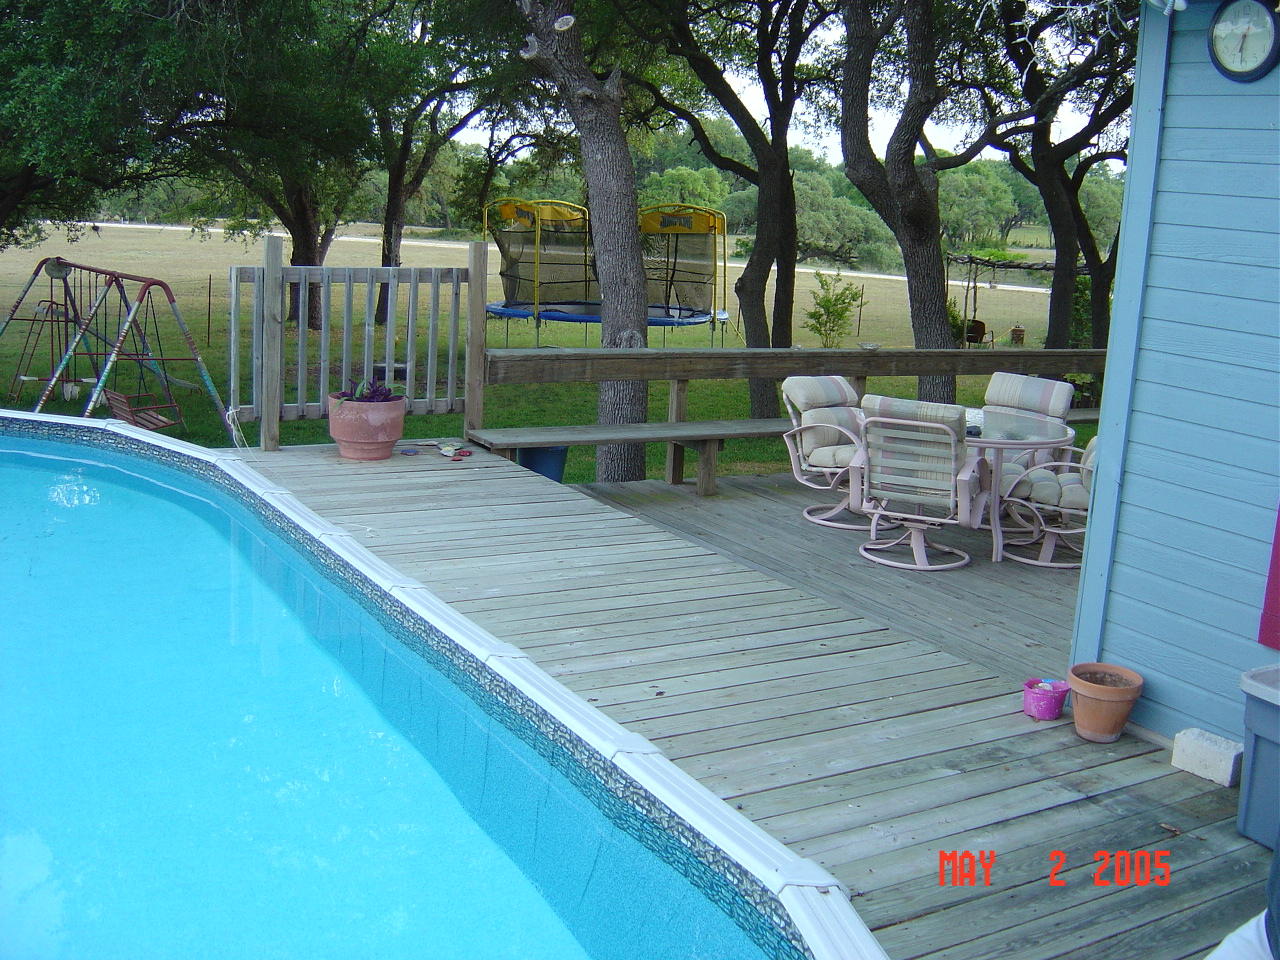 Above ground pools point neighborhood subdivision law san antonio texas tx page 7 City of san antonio swimming pools